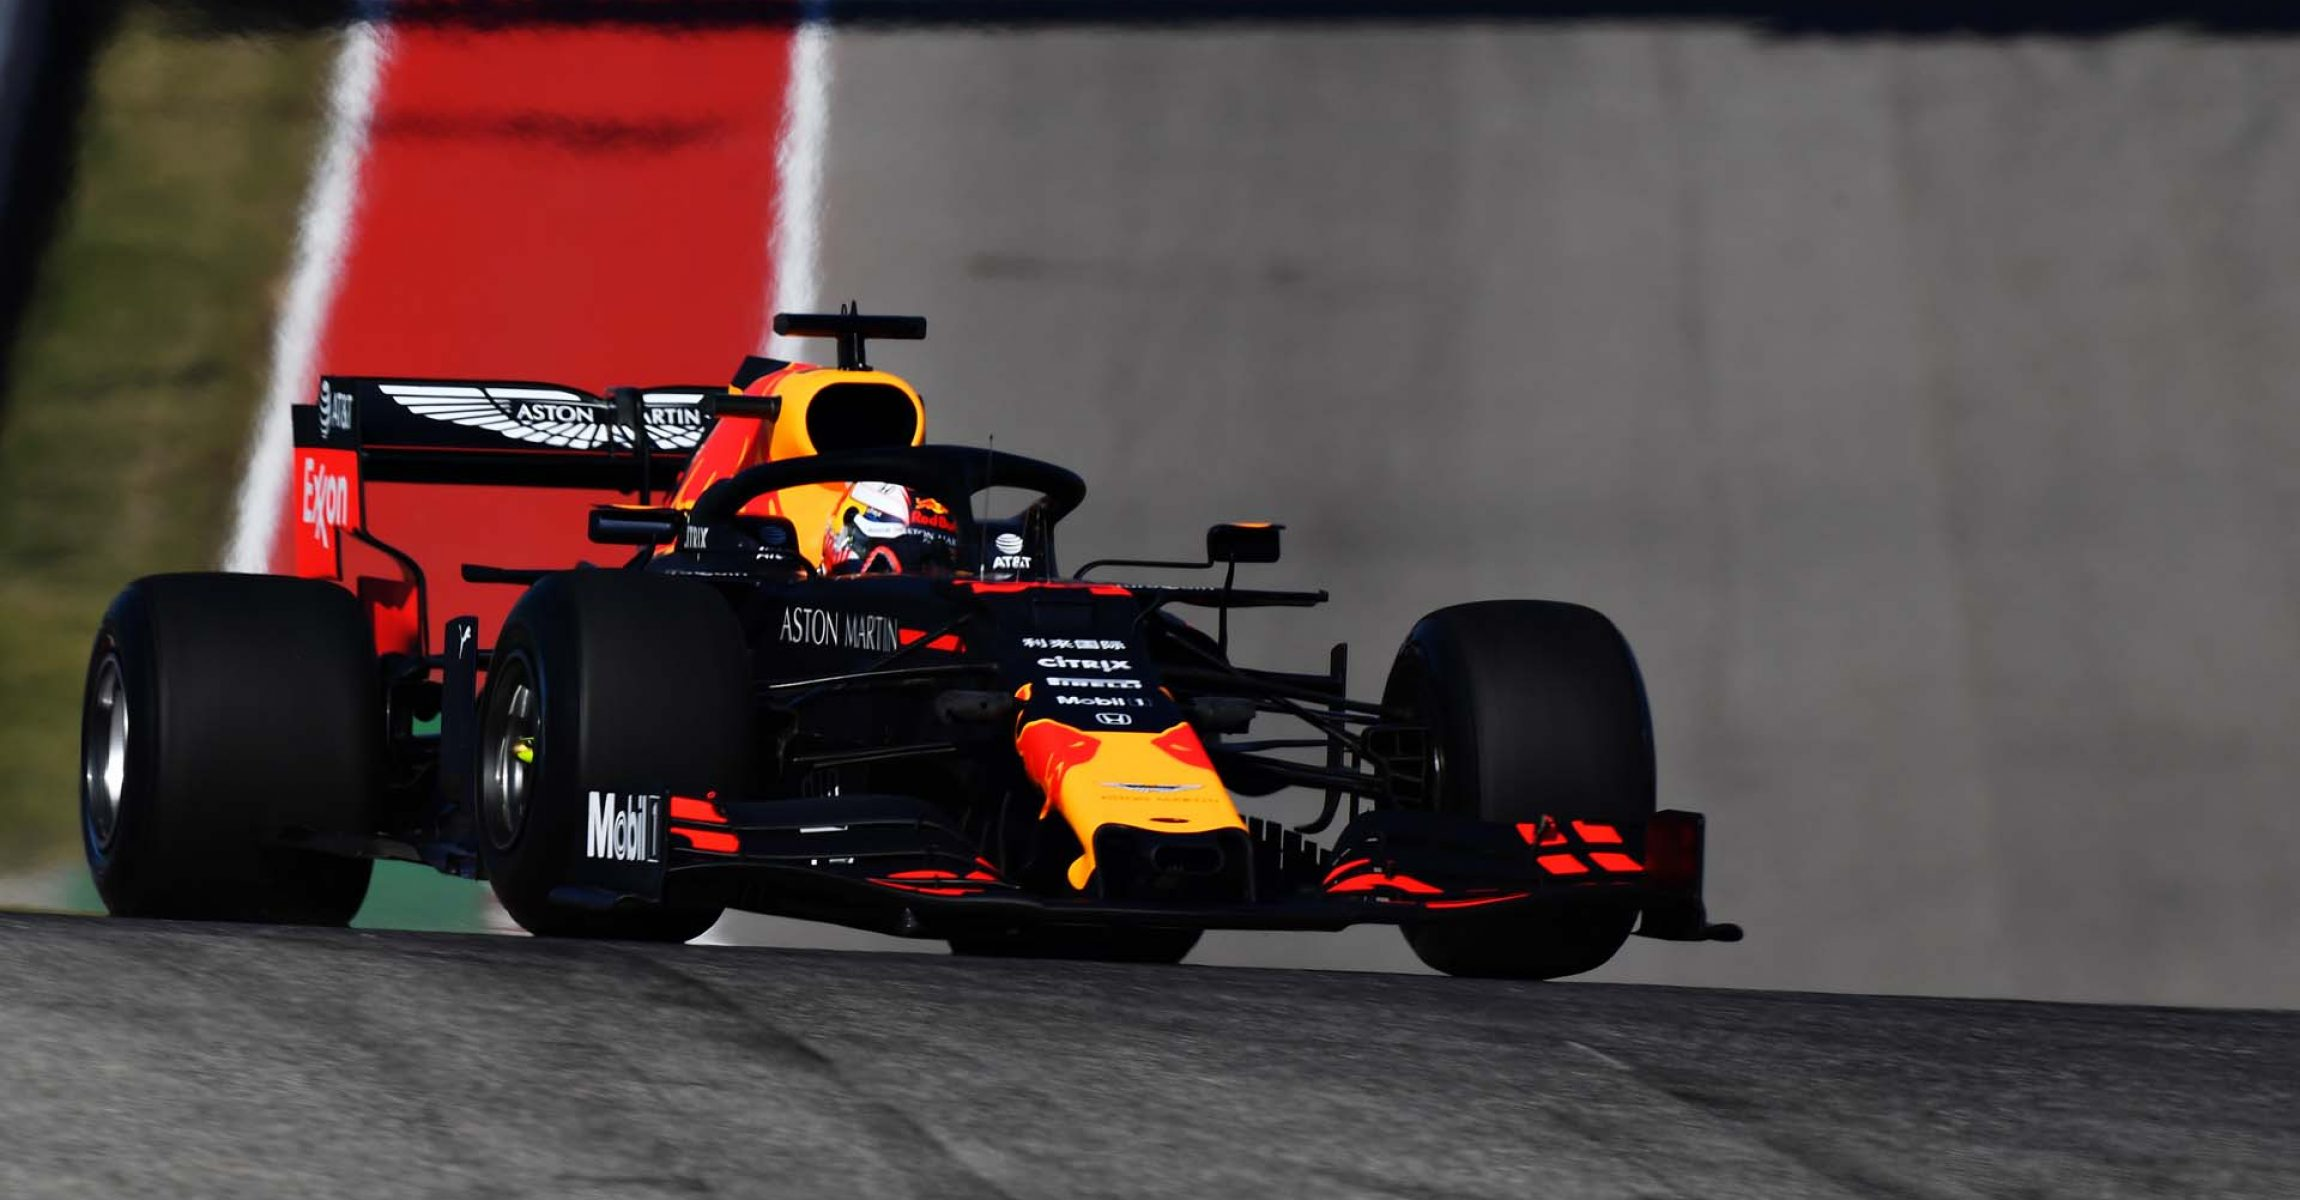 AUSTIN, TEXAS - NOVEMBER 01: Max Verstappen of the Netherlands driving the (33) Aston Martin Red Bull Racing RB15 on track during practice for the F1 Grand Prix of USA at Circuit of The Americas on November 01, 2019 in Austin, Texas. (Photo by Clive Mason/Getty Images) // Getty Images / Red Bull Content Pool // AP-2227Q2J6N2111 // Usage for editorial use only //